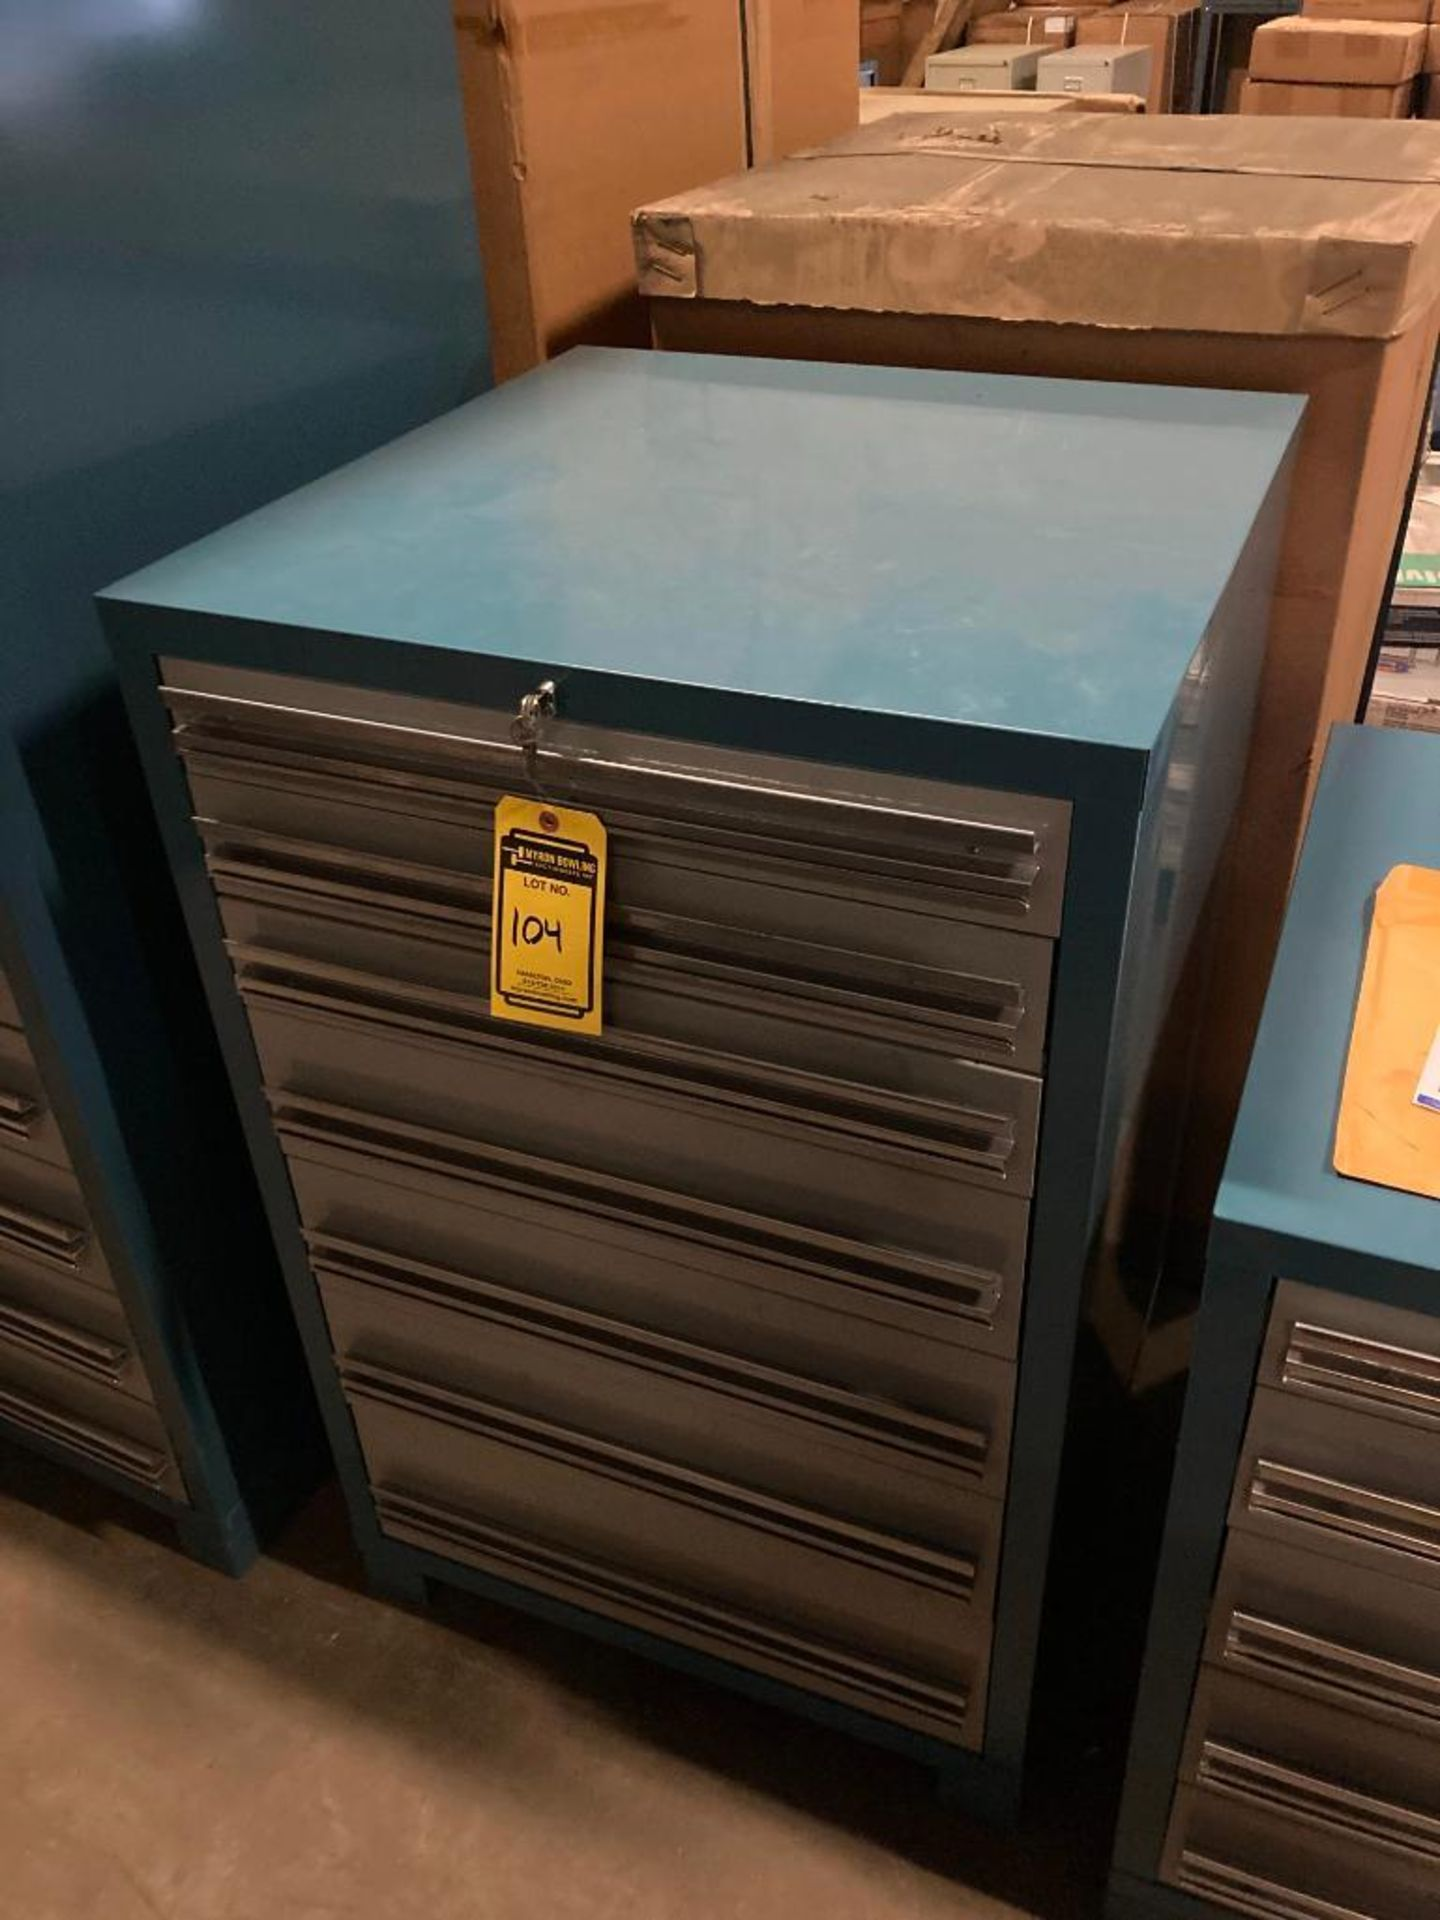 (5X) (NEW) EDSEL 7-DRAWER HEAVY DUTY MODULAR TOOLING CABINET; 28.25''W X 44.5''H X 28.25''D; MODEL M - Image 2 of 2